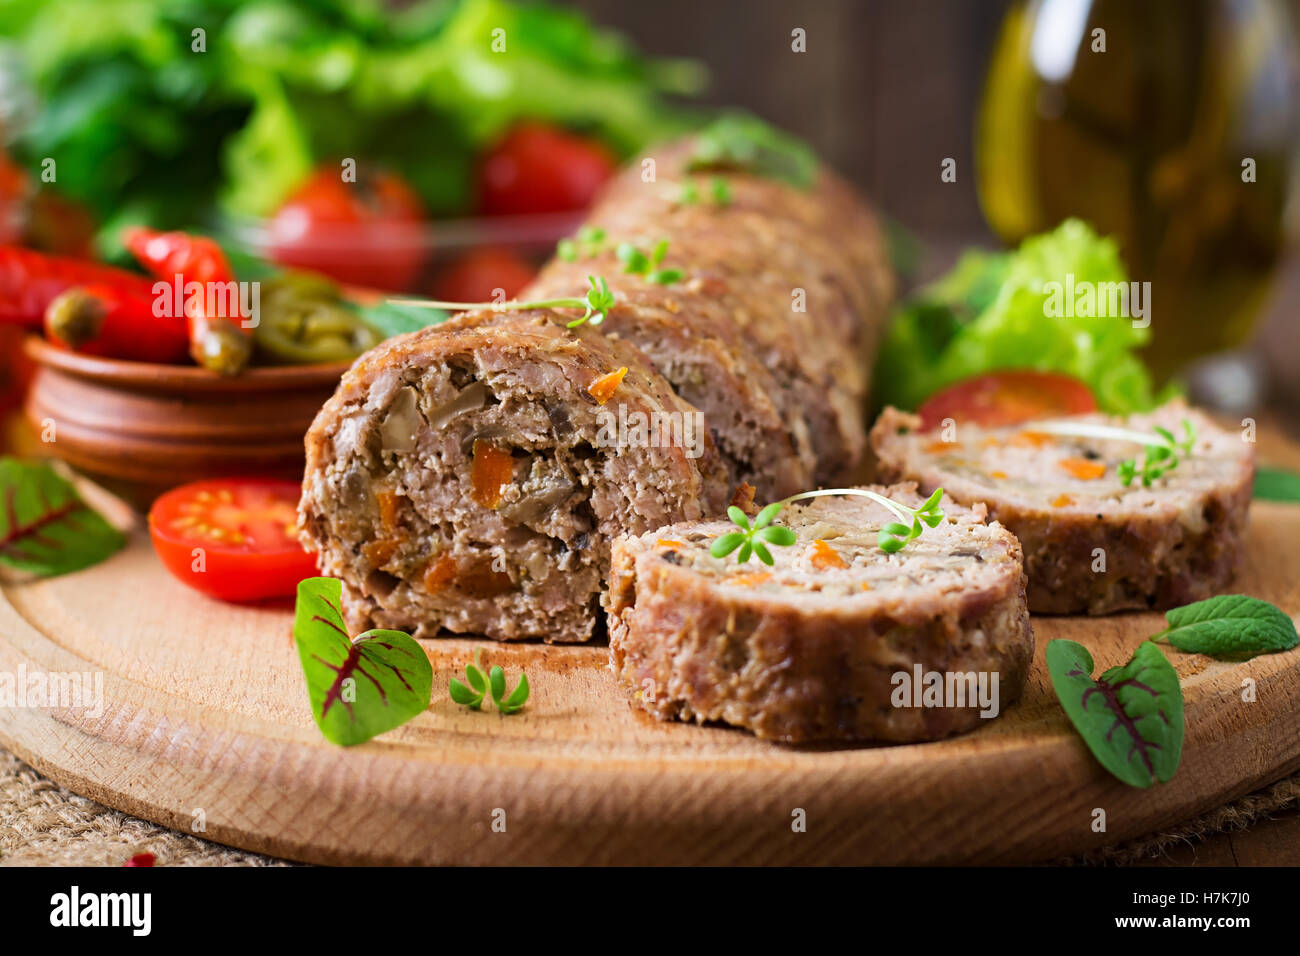 Minced meat loaf roll with mushrooms and carrots - Stock Image